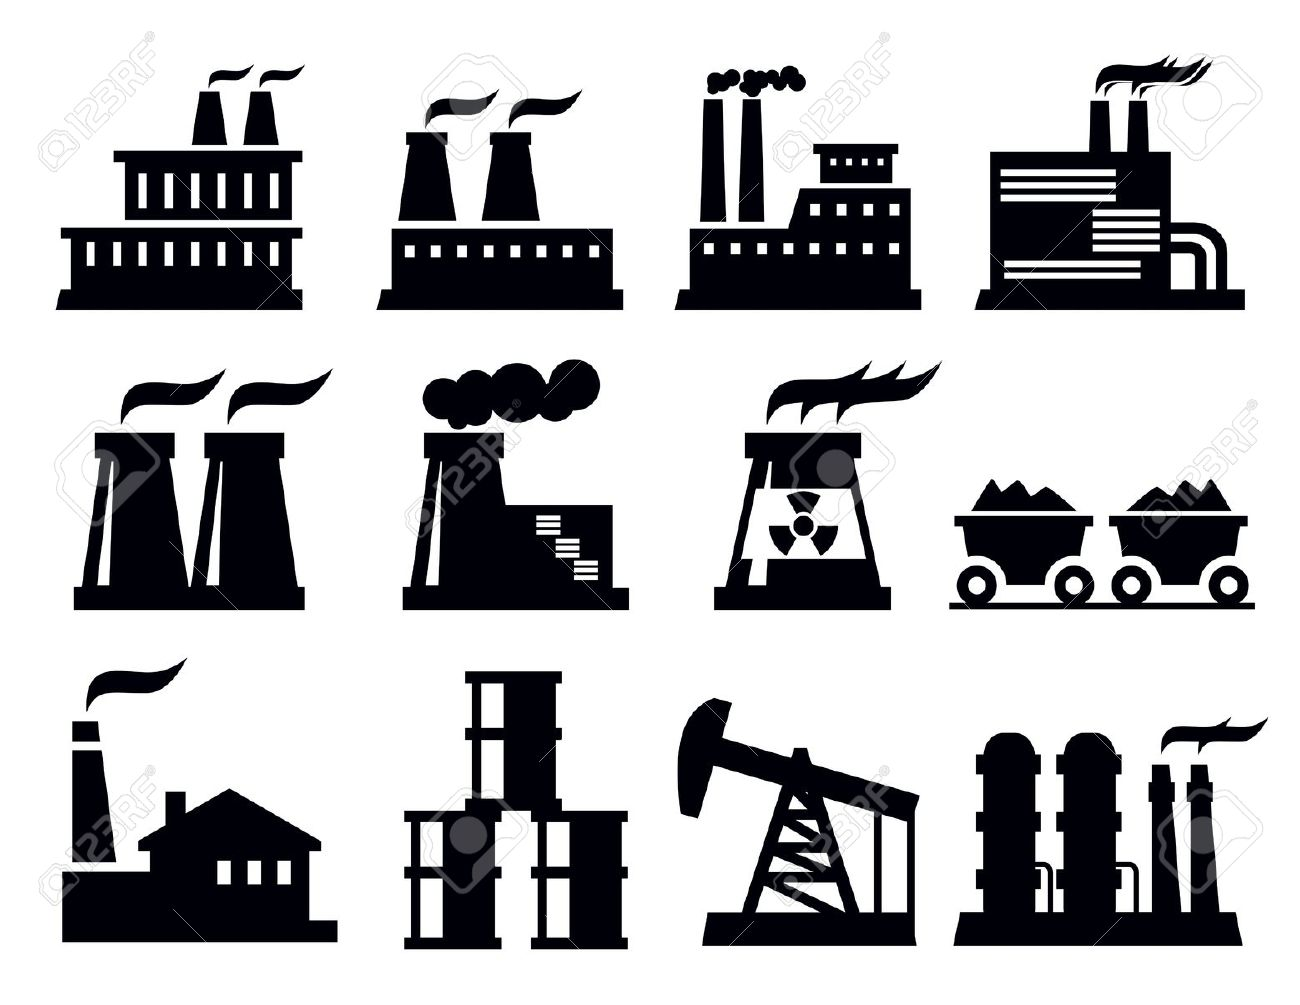 Paloma Clipart together with Factory Chimney Clipart further Colonial Cliparts likewise Fierce Clipart likewise Port Clipart. on harbor 20clipart